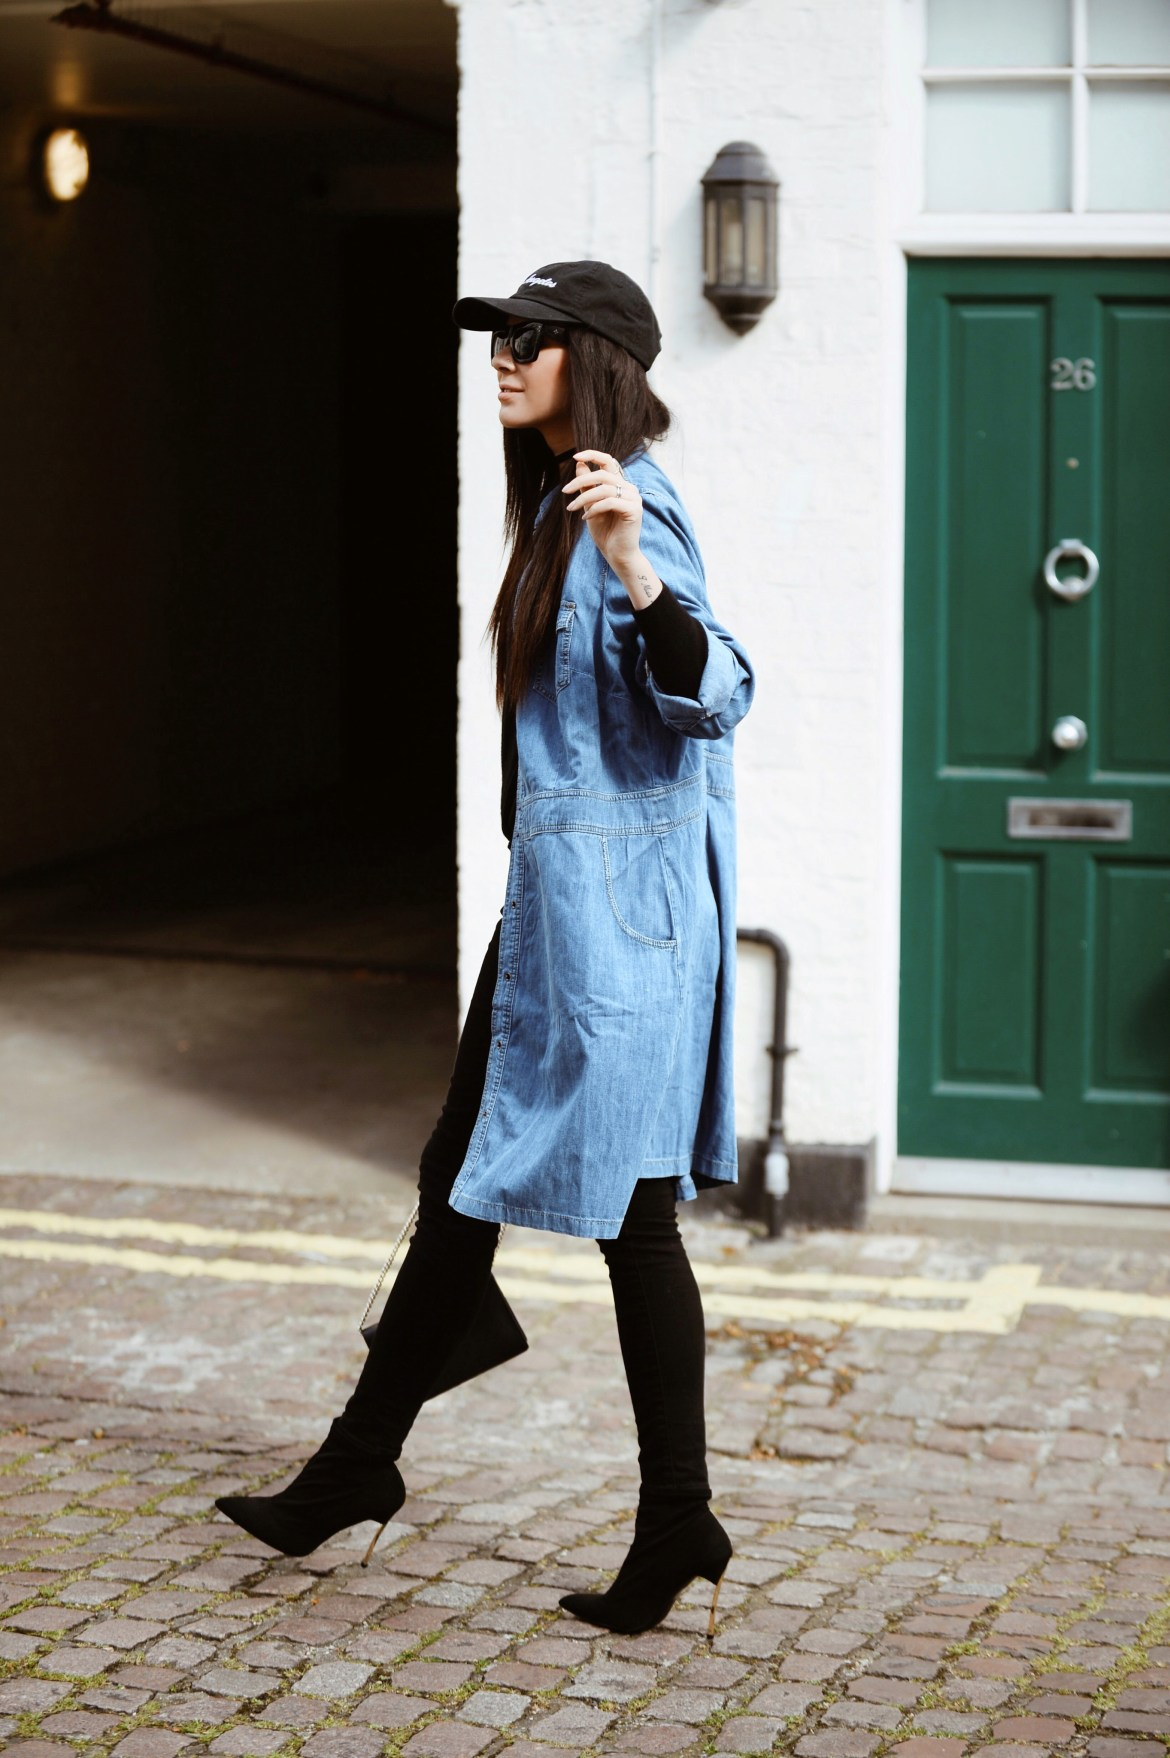 Heels, levi's jeans, denim jacket , cap and sunnies